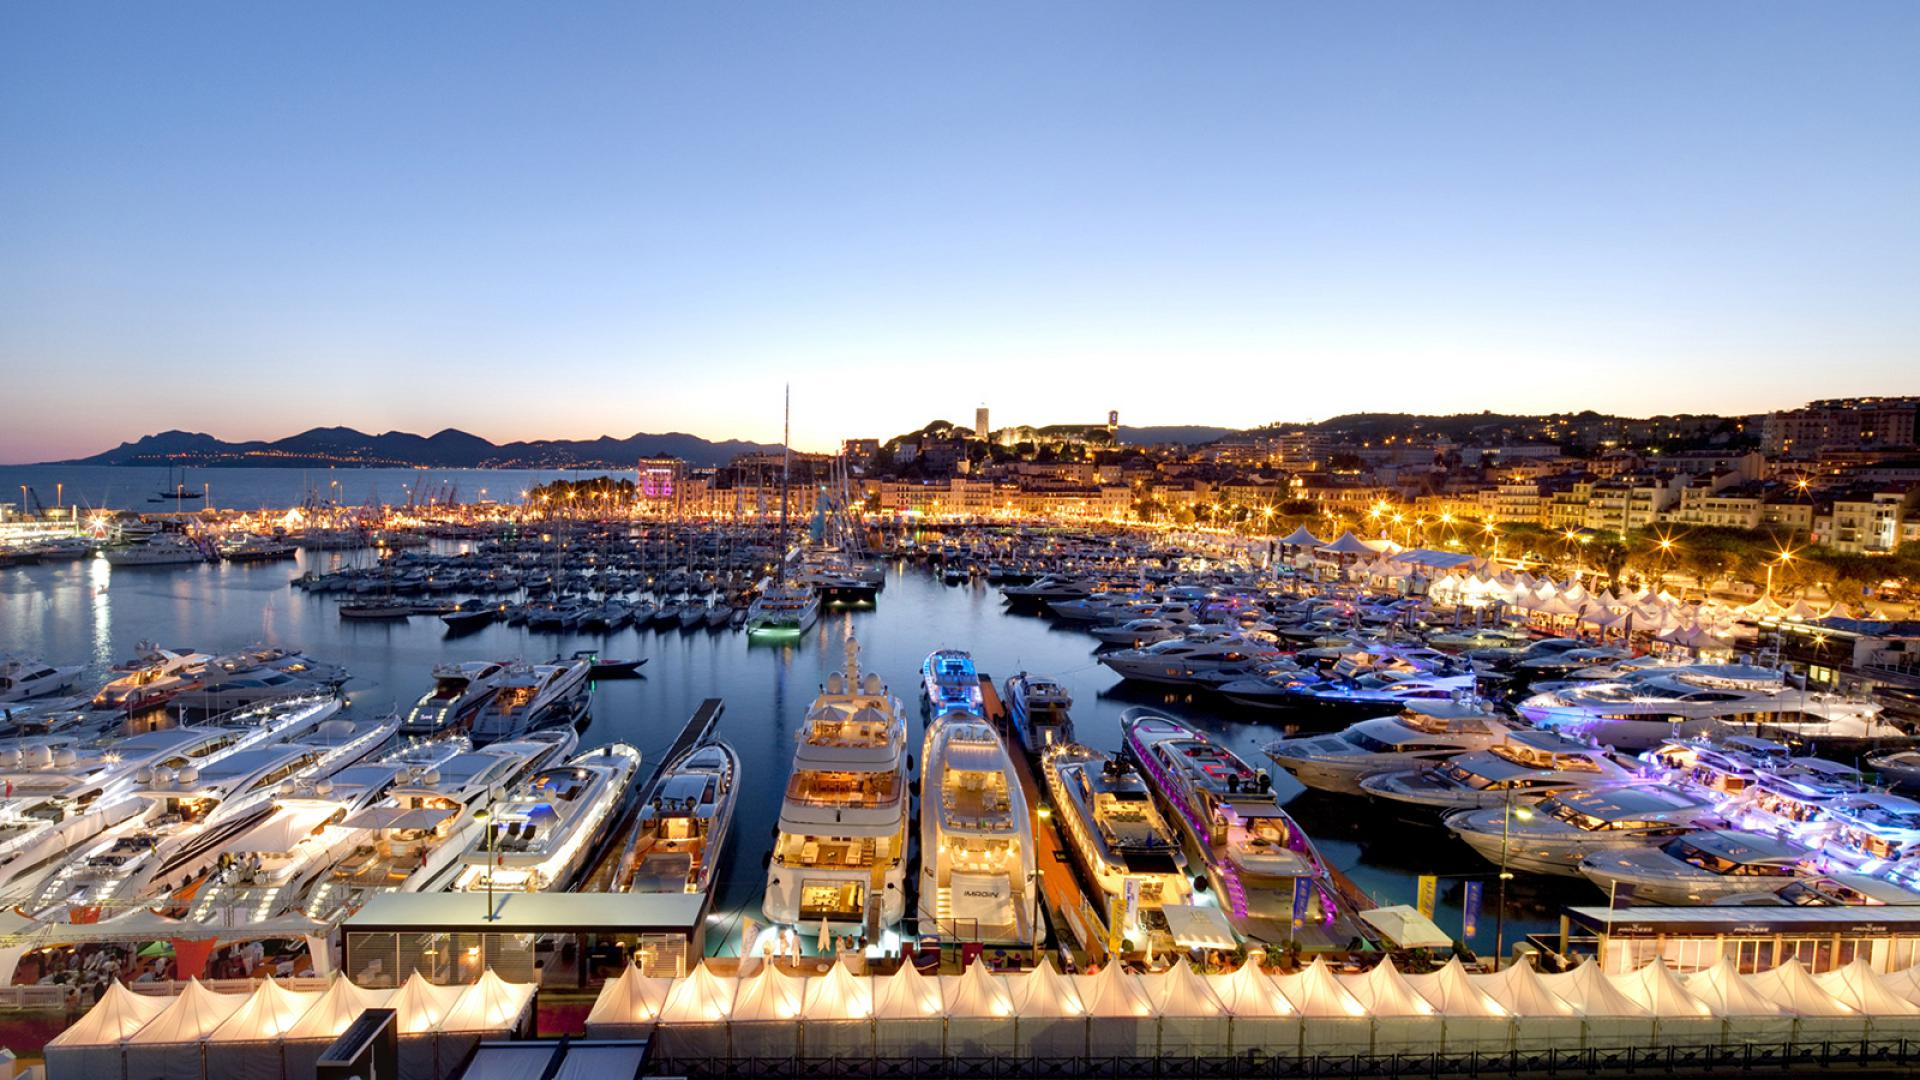 CANNES YACTHING FESTIVAL THE LARGEST BOAT SHOW IN THE WORLD